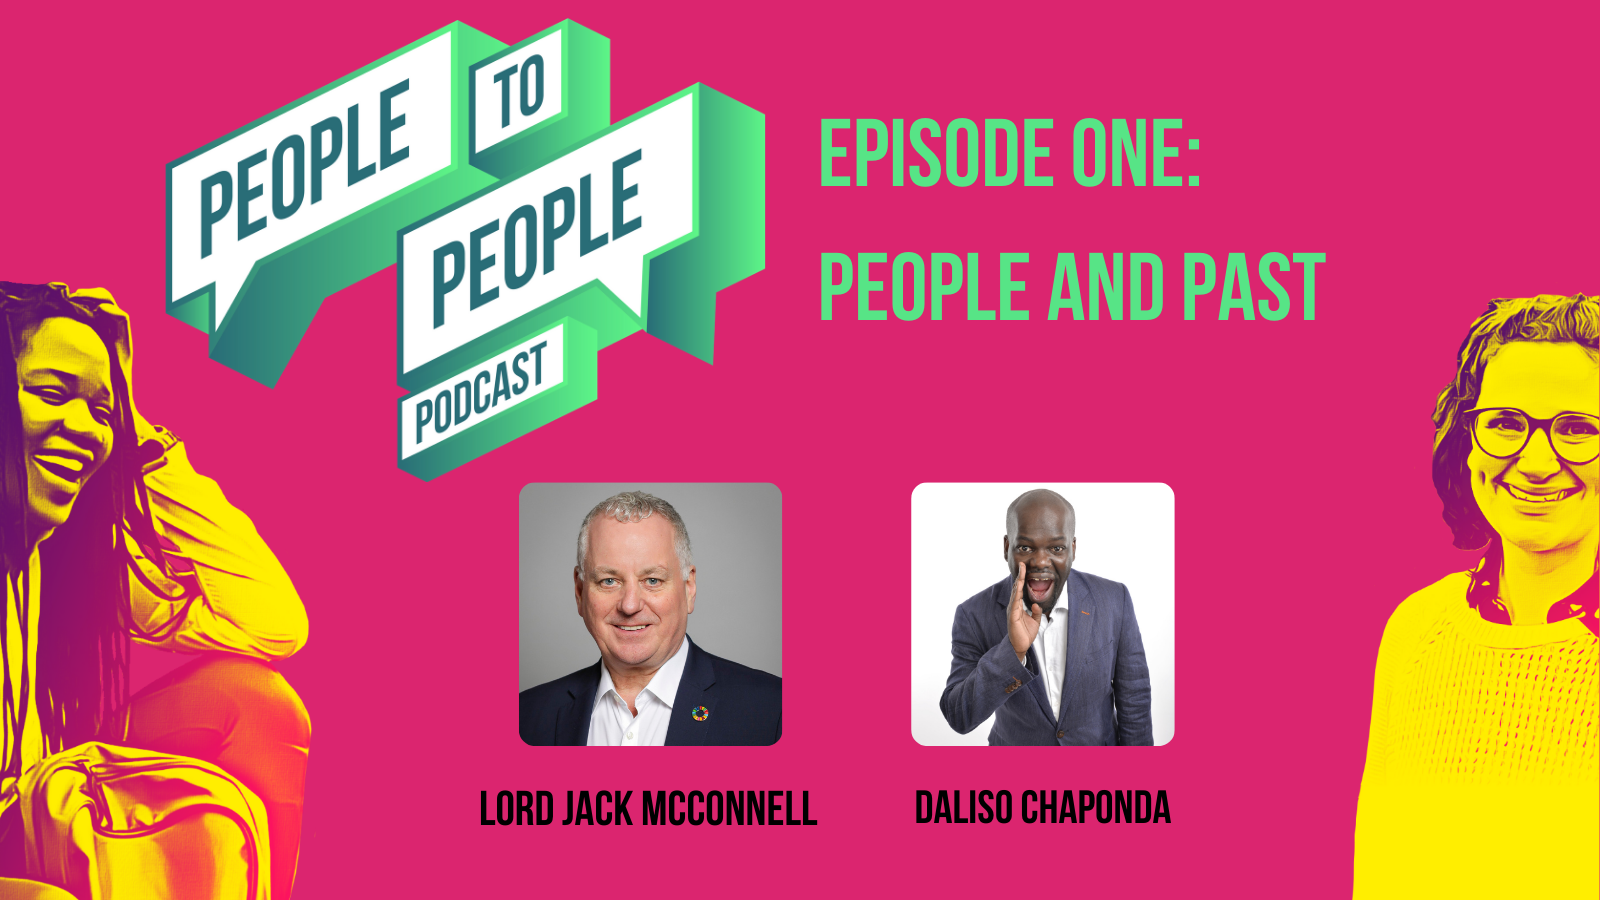 Episode One Lord Jack Mc Connell and Daliso Chaponda Twitter 1